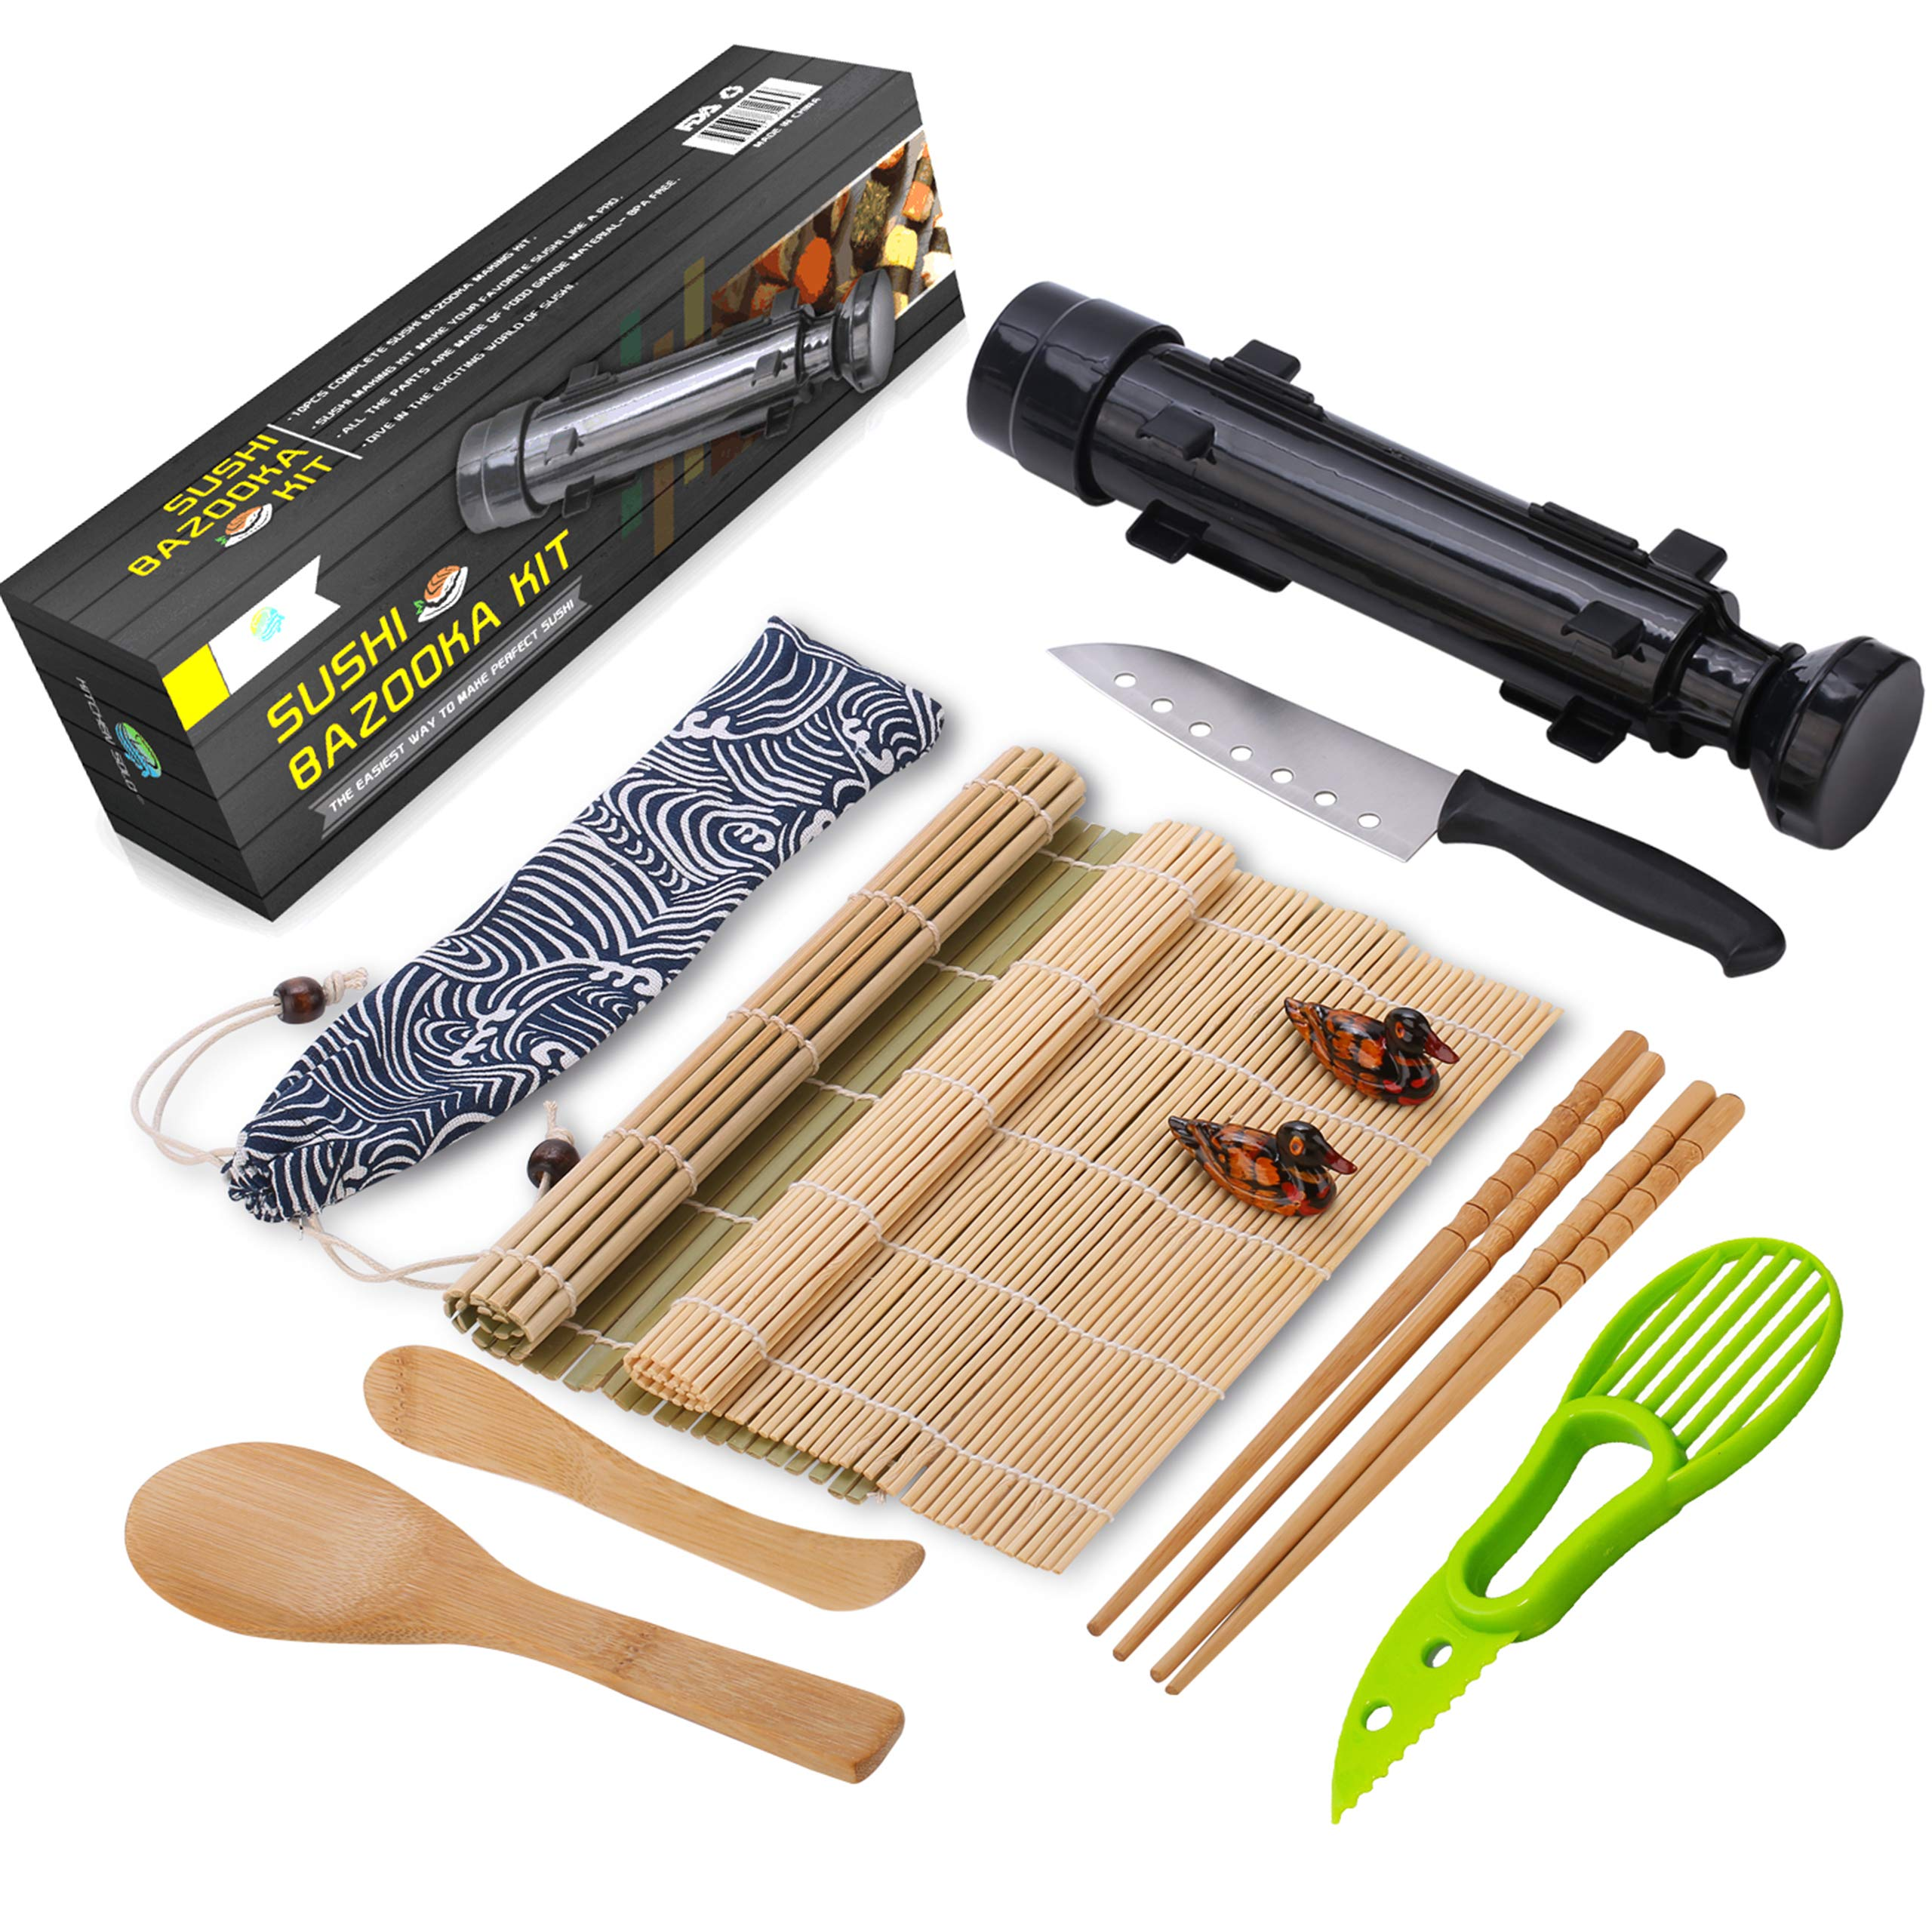 Sushi Making Kit - All In One Sushi Bazooka Maker with Bamboo Mats, Bamboo Chopsticks, Avocado Slicer, Paddle,Spreader,Sushi Knife, Chopsticks Holder, Cotton Bag - DIY Sushi Roller Machine - Black by Kitchen Solo